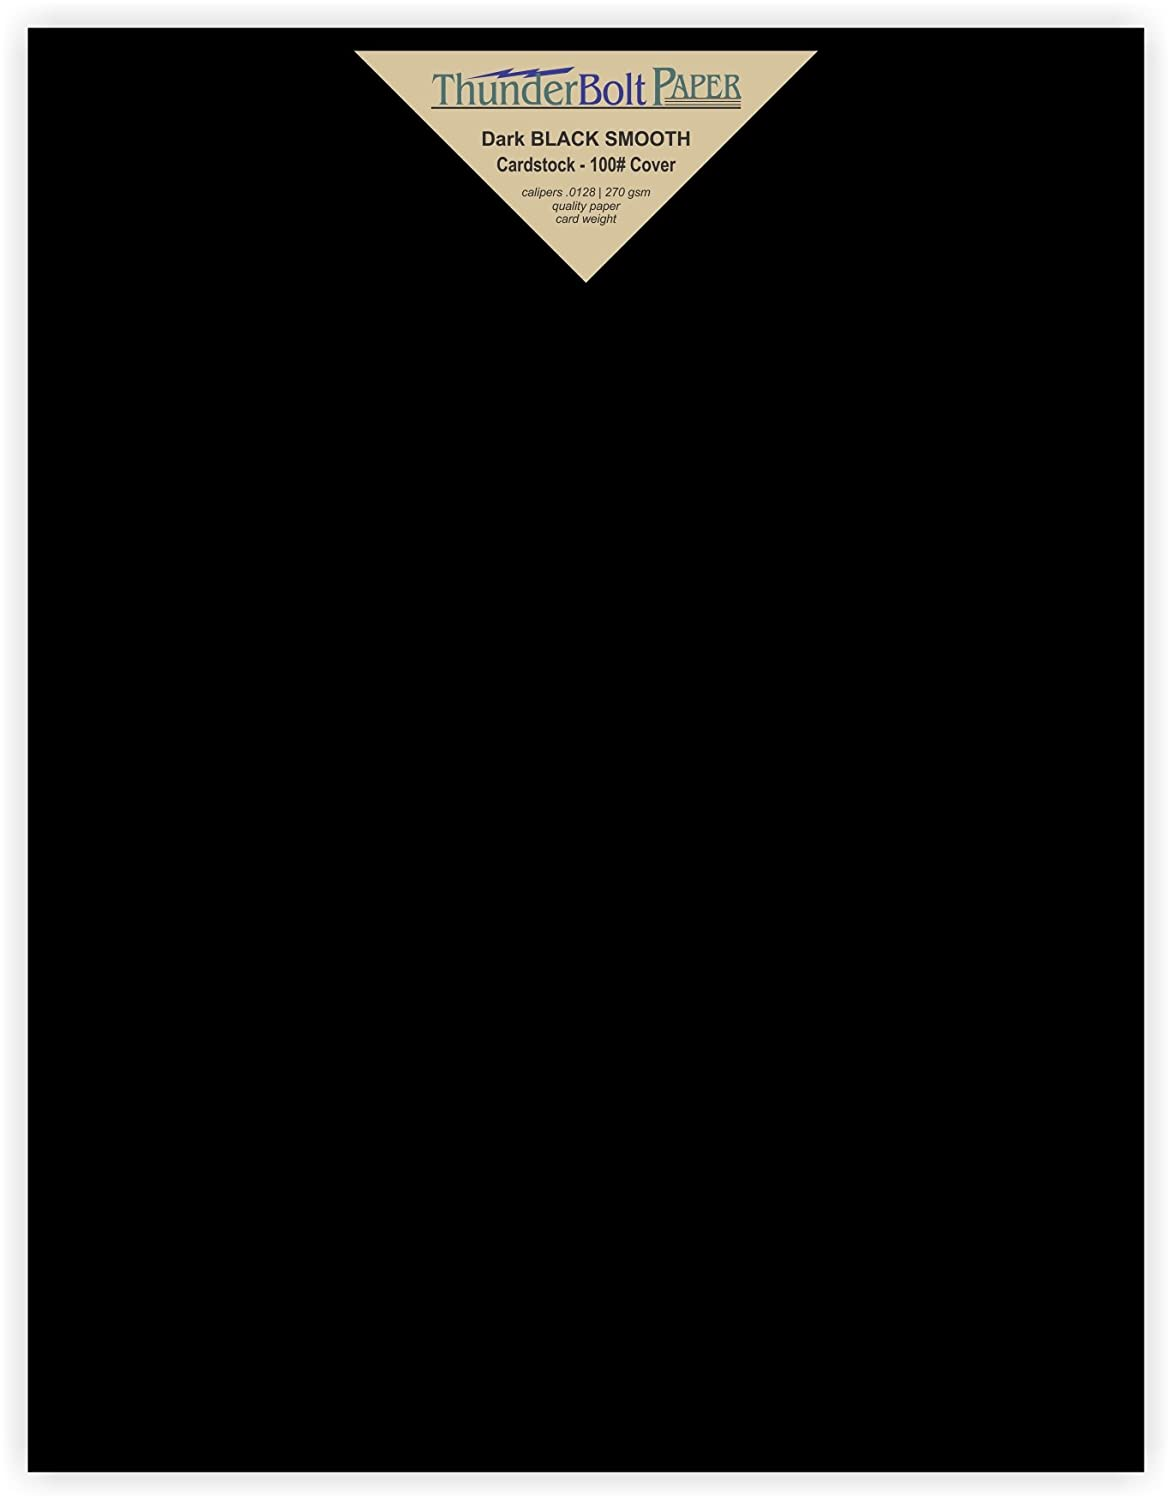 40 Dark Black Smooth Card Sheets - 100# (100 lb/pound) - 8.5 X 11 (8.5x11 Inches) Letter Size - Cover Weight Fine Paper for Quality Results on a Smooth Finish TBP 4336867768